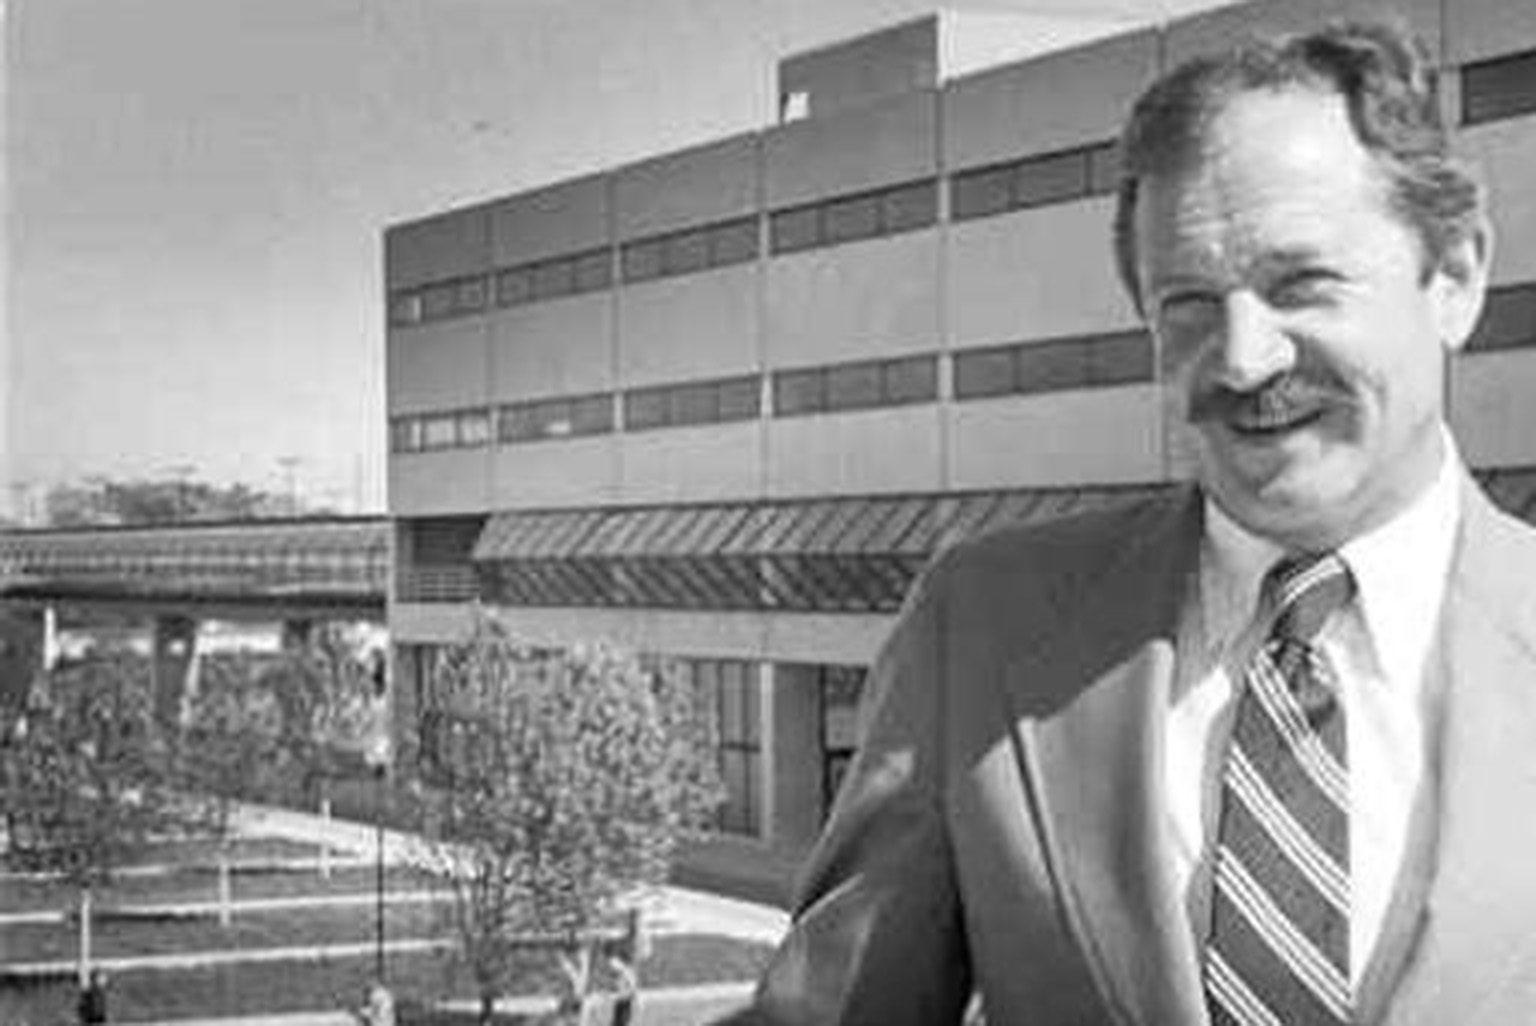 Founding Dean Charles Bonser stands in front of a concrete building at IUPUI